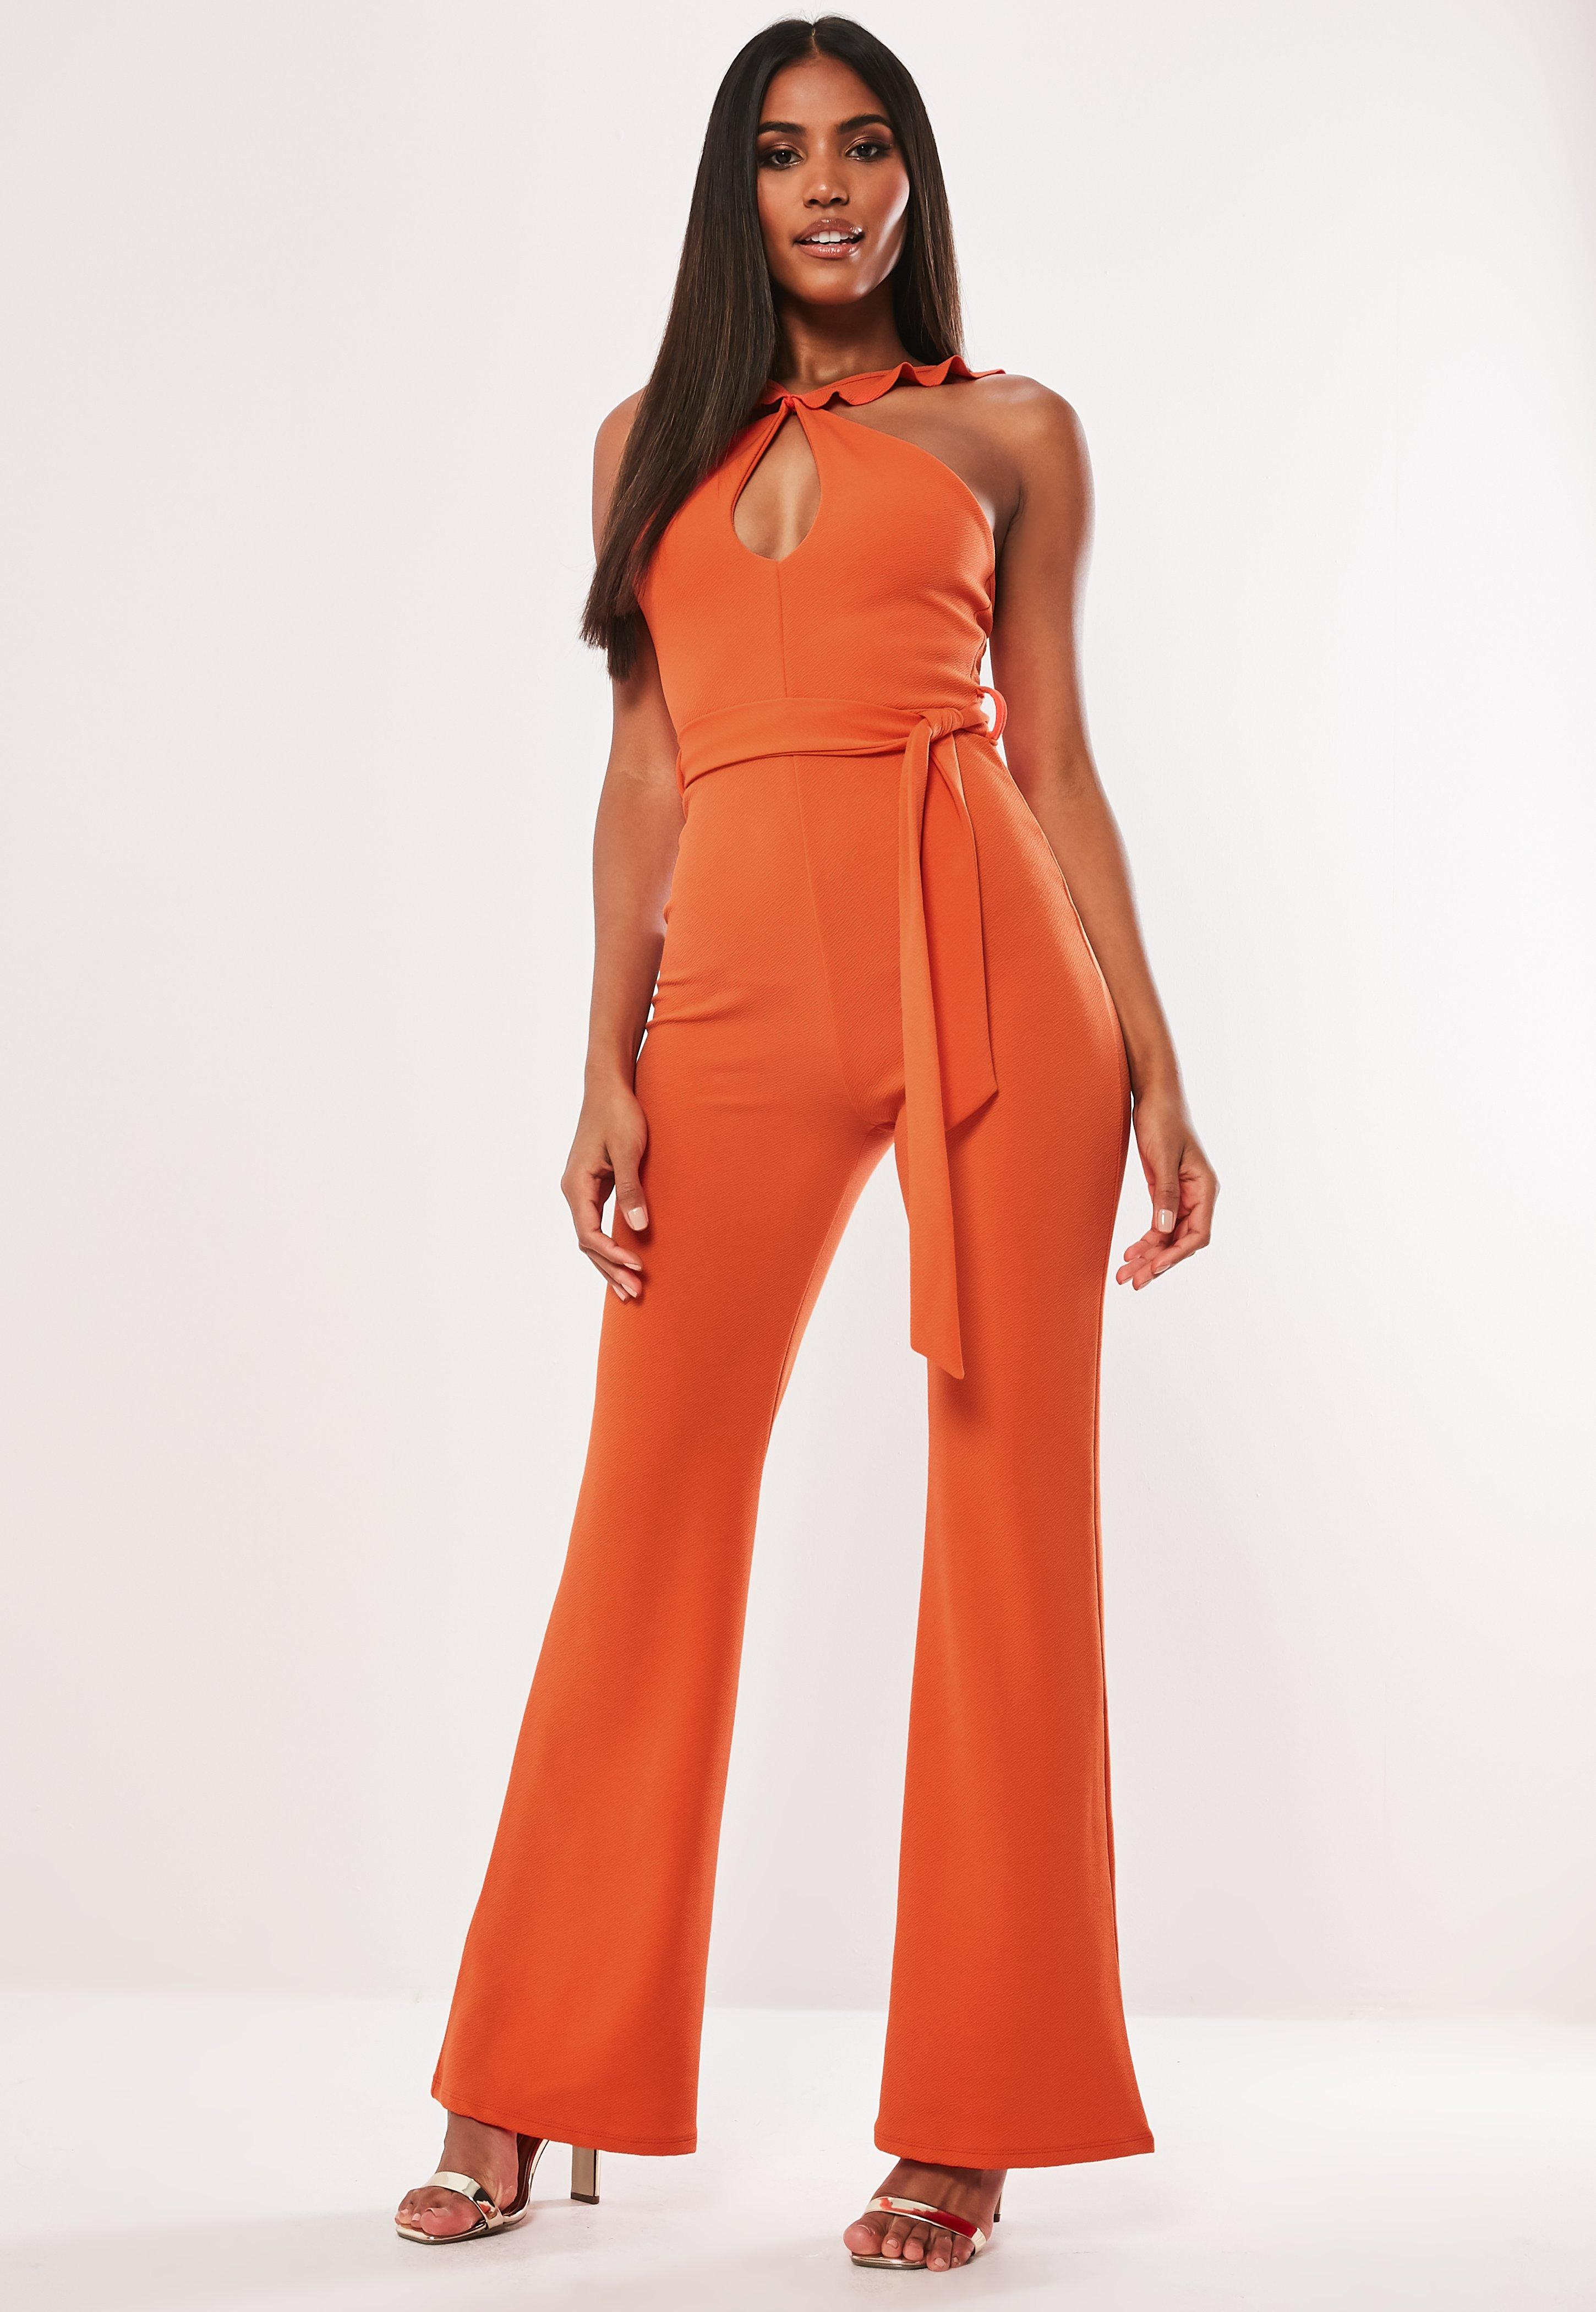 a7285f2ee59 Dressy Jumpsuits - Evening Jumpsuits